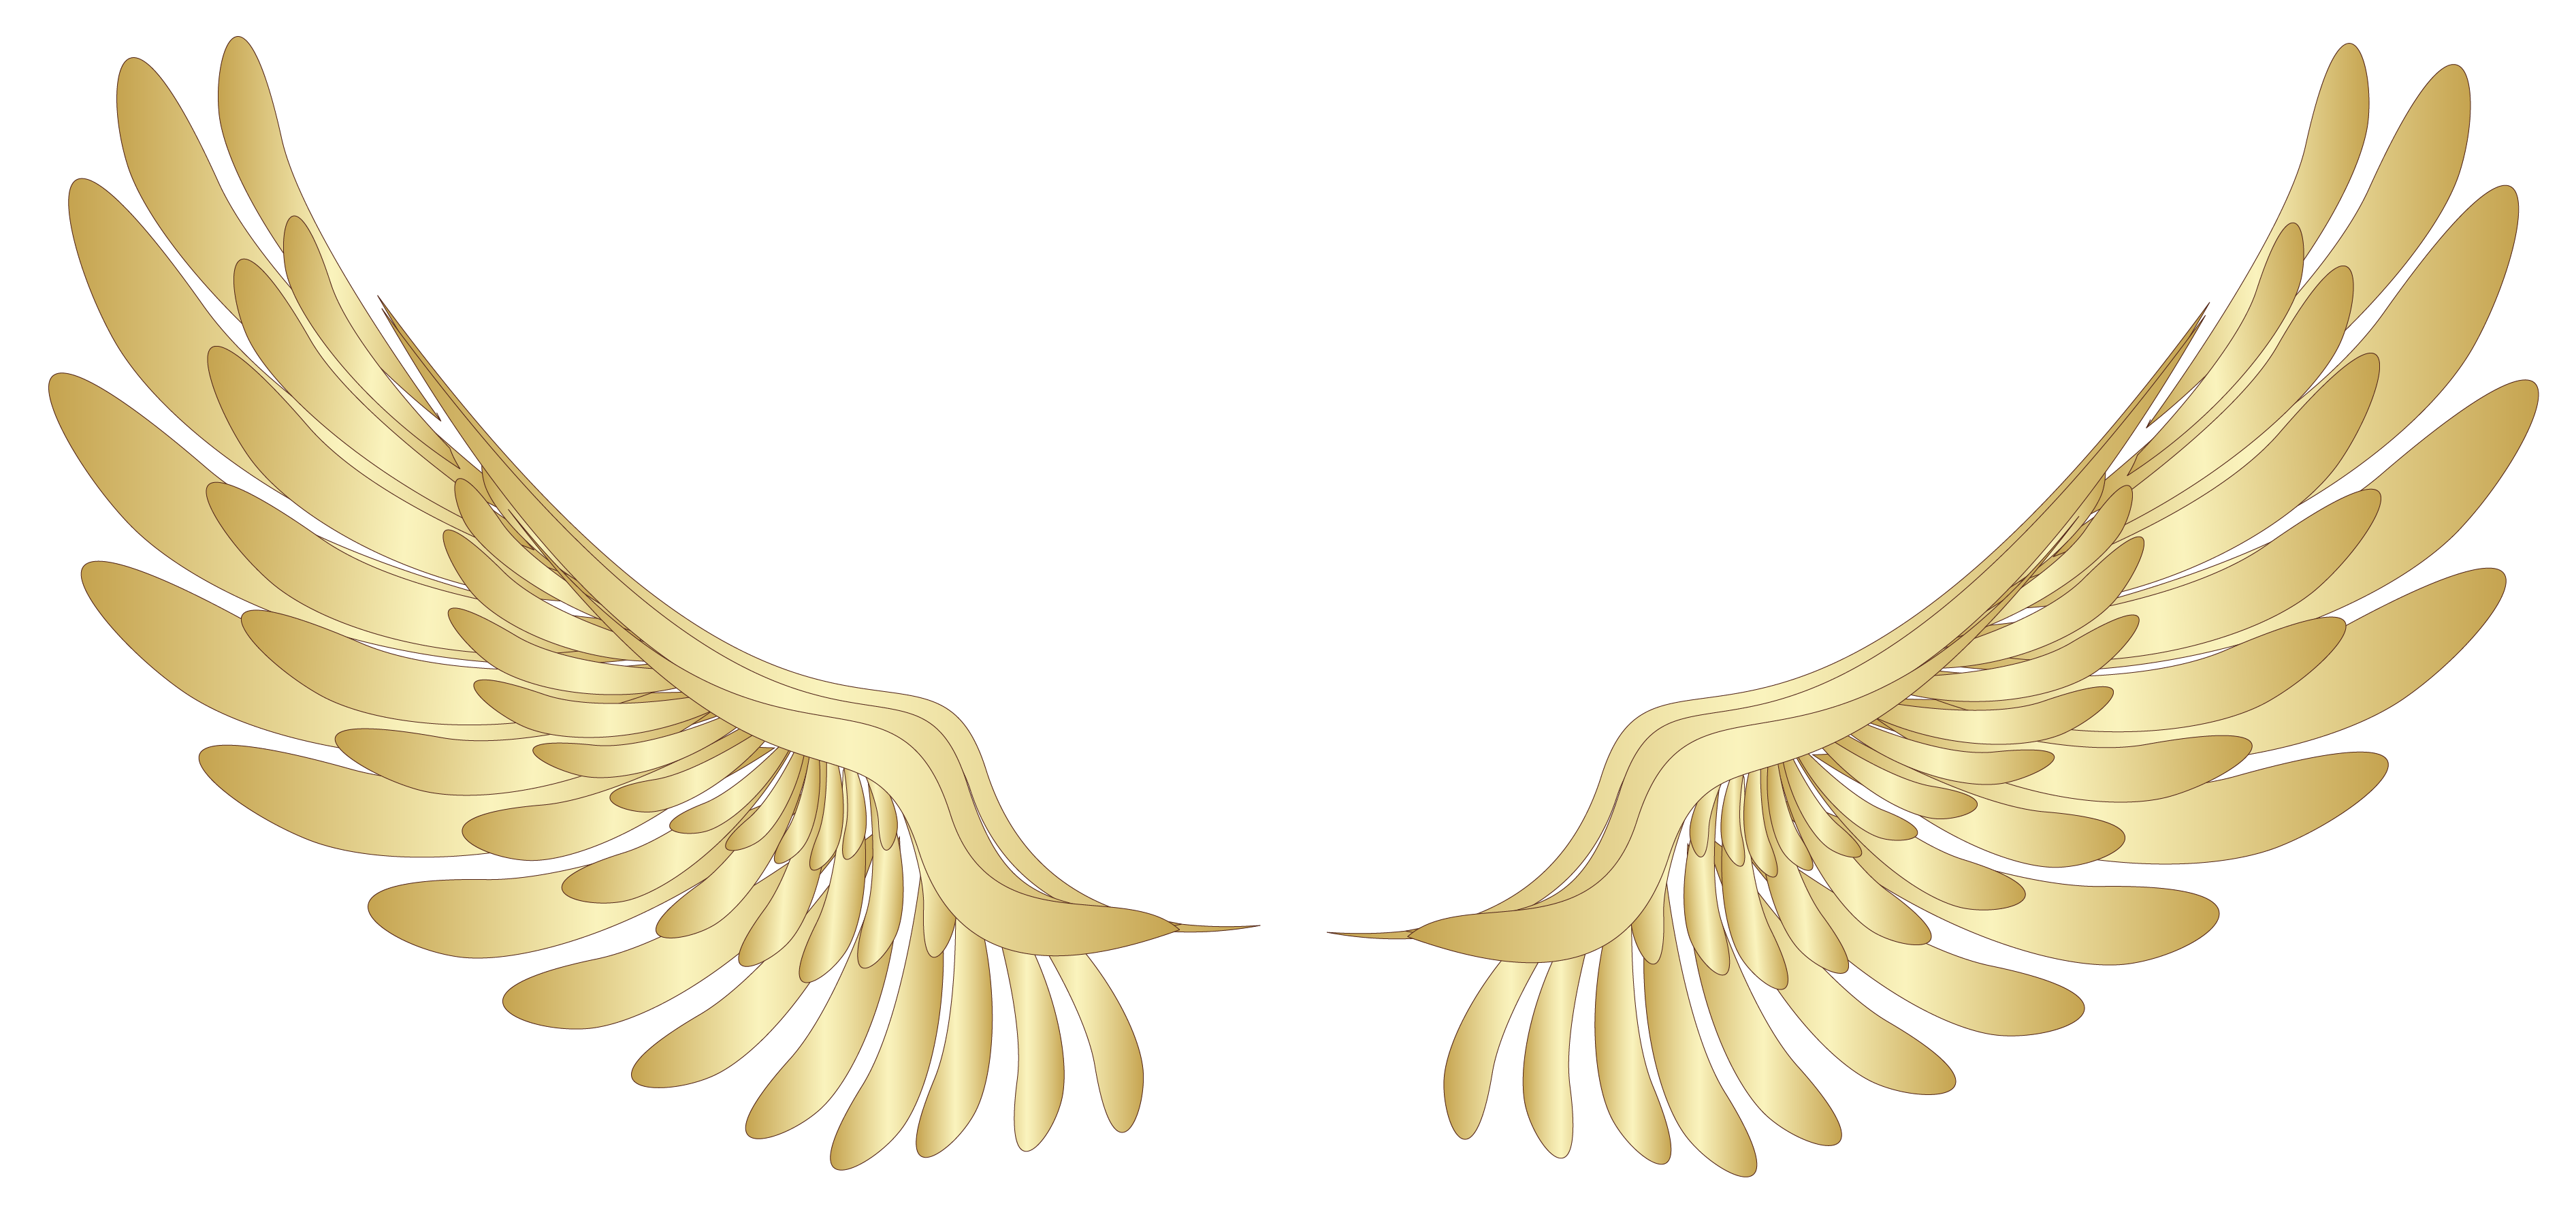 Graph clipart yellow. Golden wings decor png